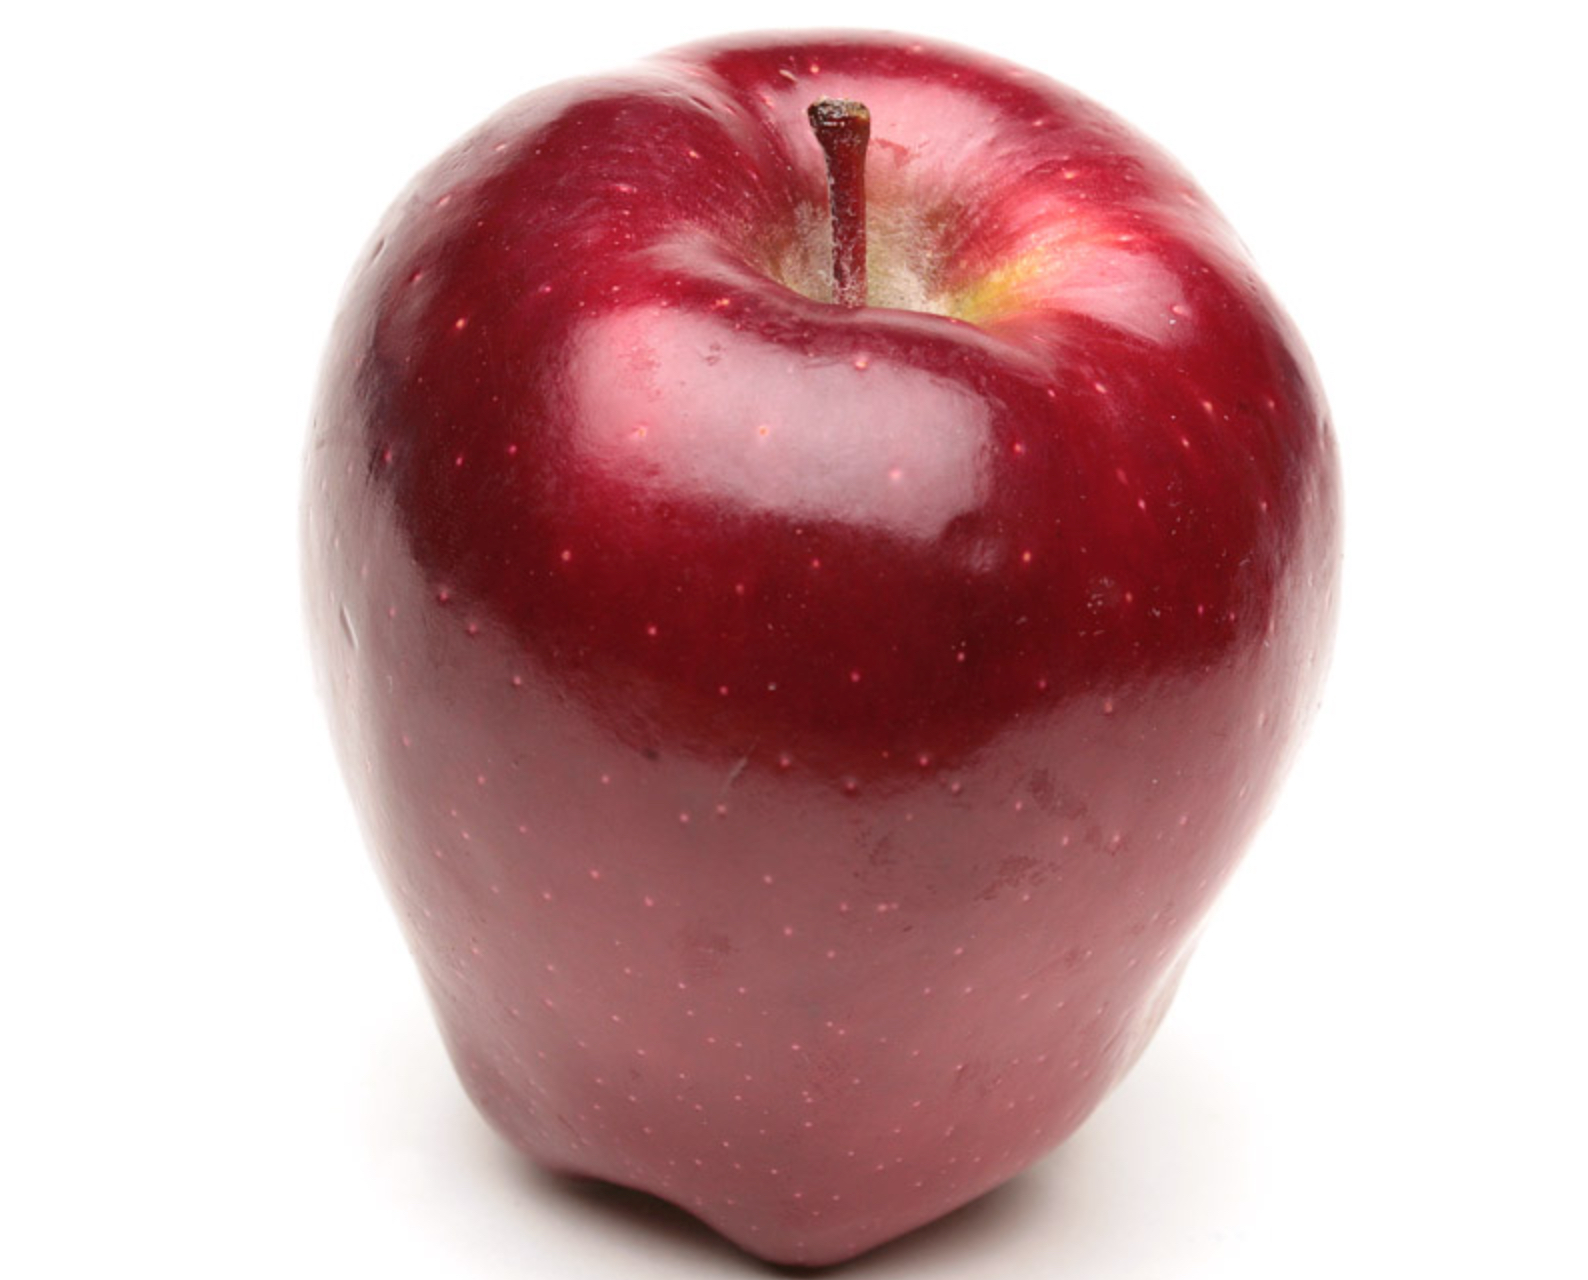 Why are Red Delicious apples absolutely not delicious?